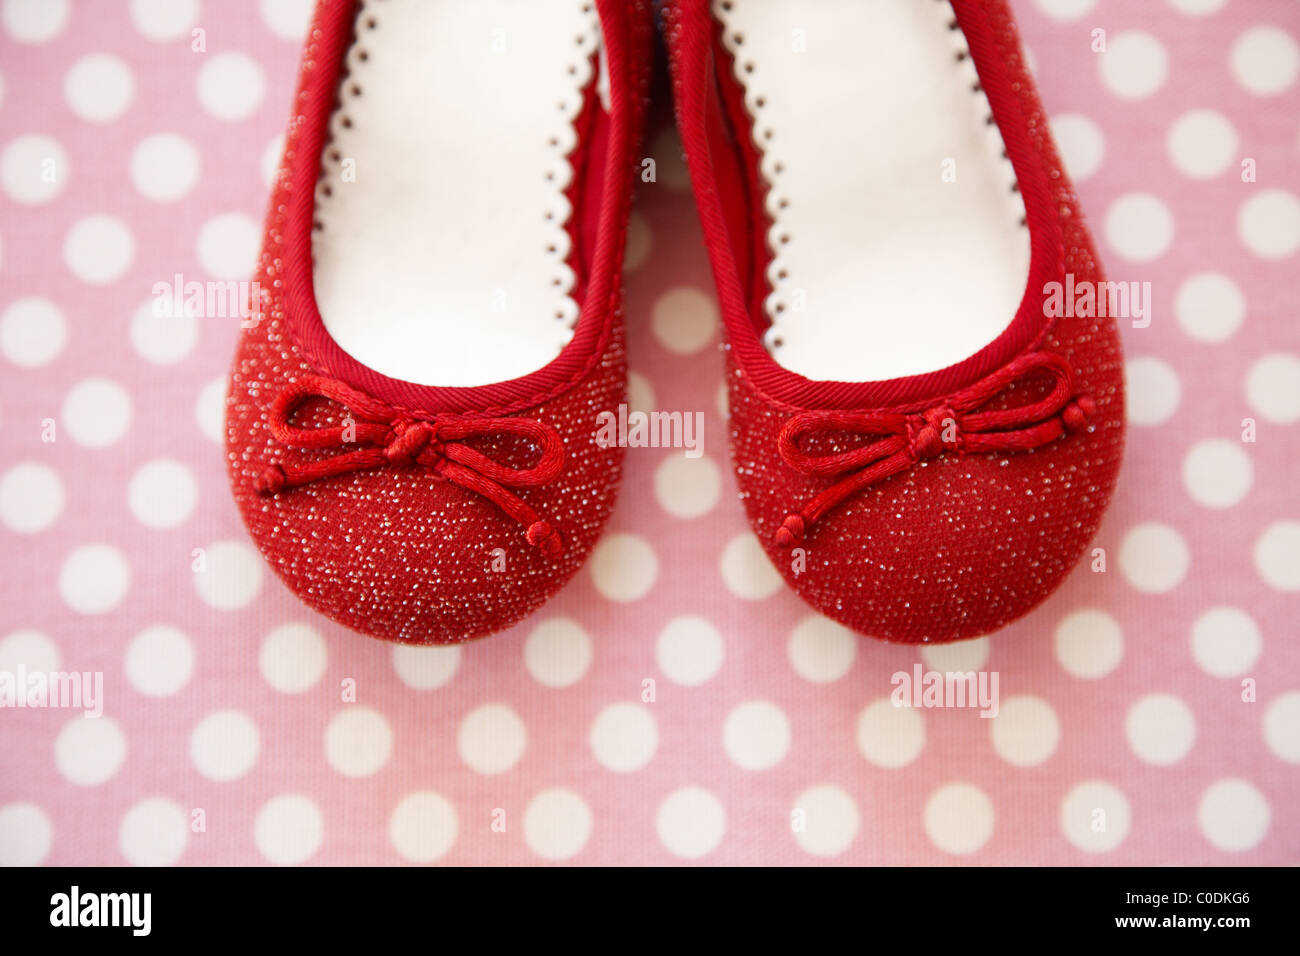 ae5a880db0f Ruby red slippers Stock Photo  34721462 - Alamy